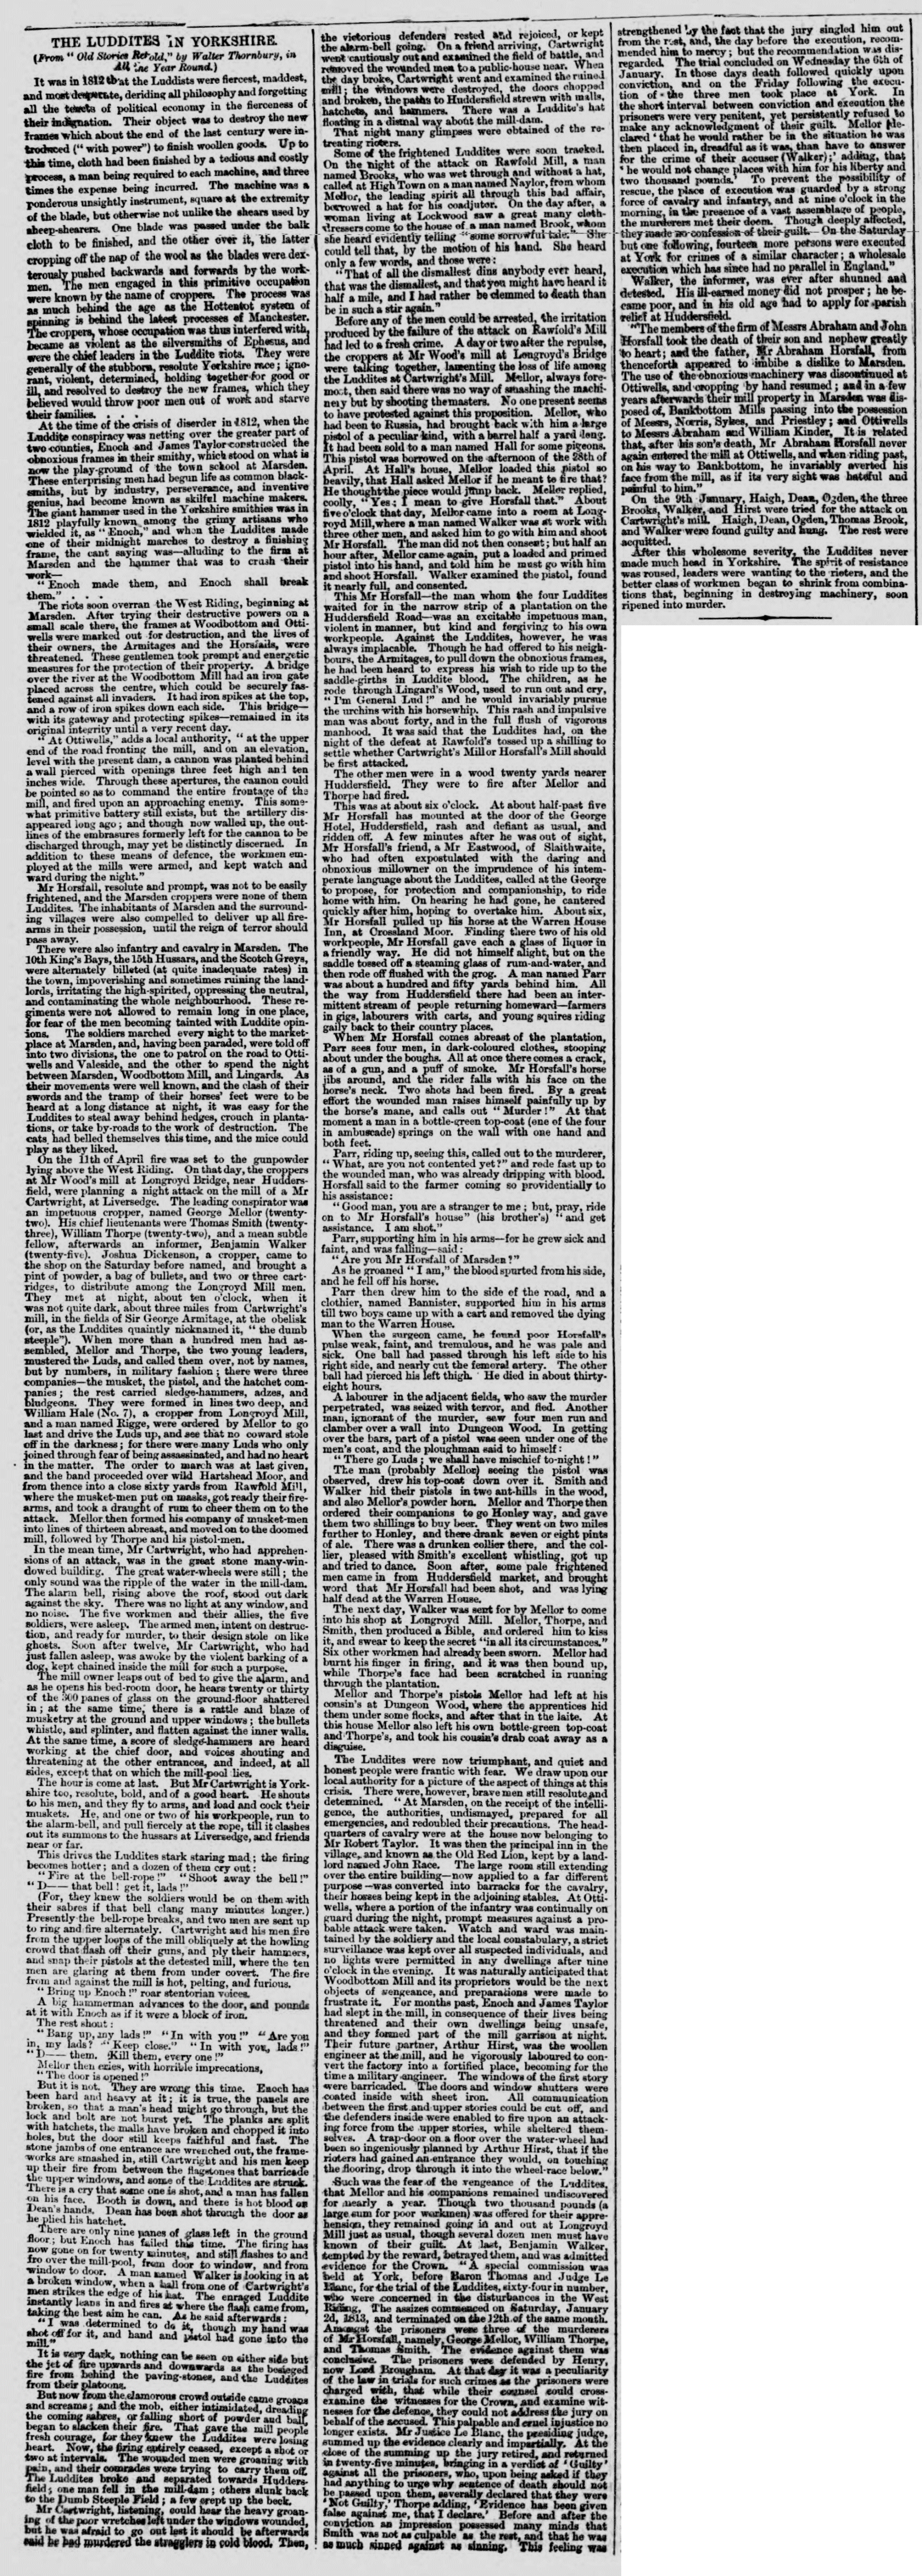 Yorkshire Post and Leeds Intelligencer 11 May 1867 The Luddites in Yorkshire.png